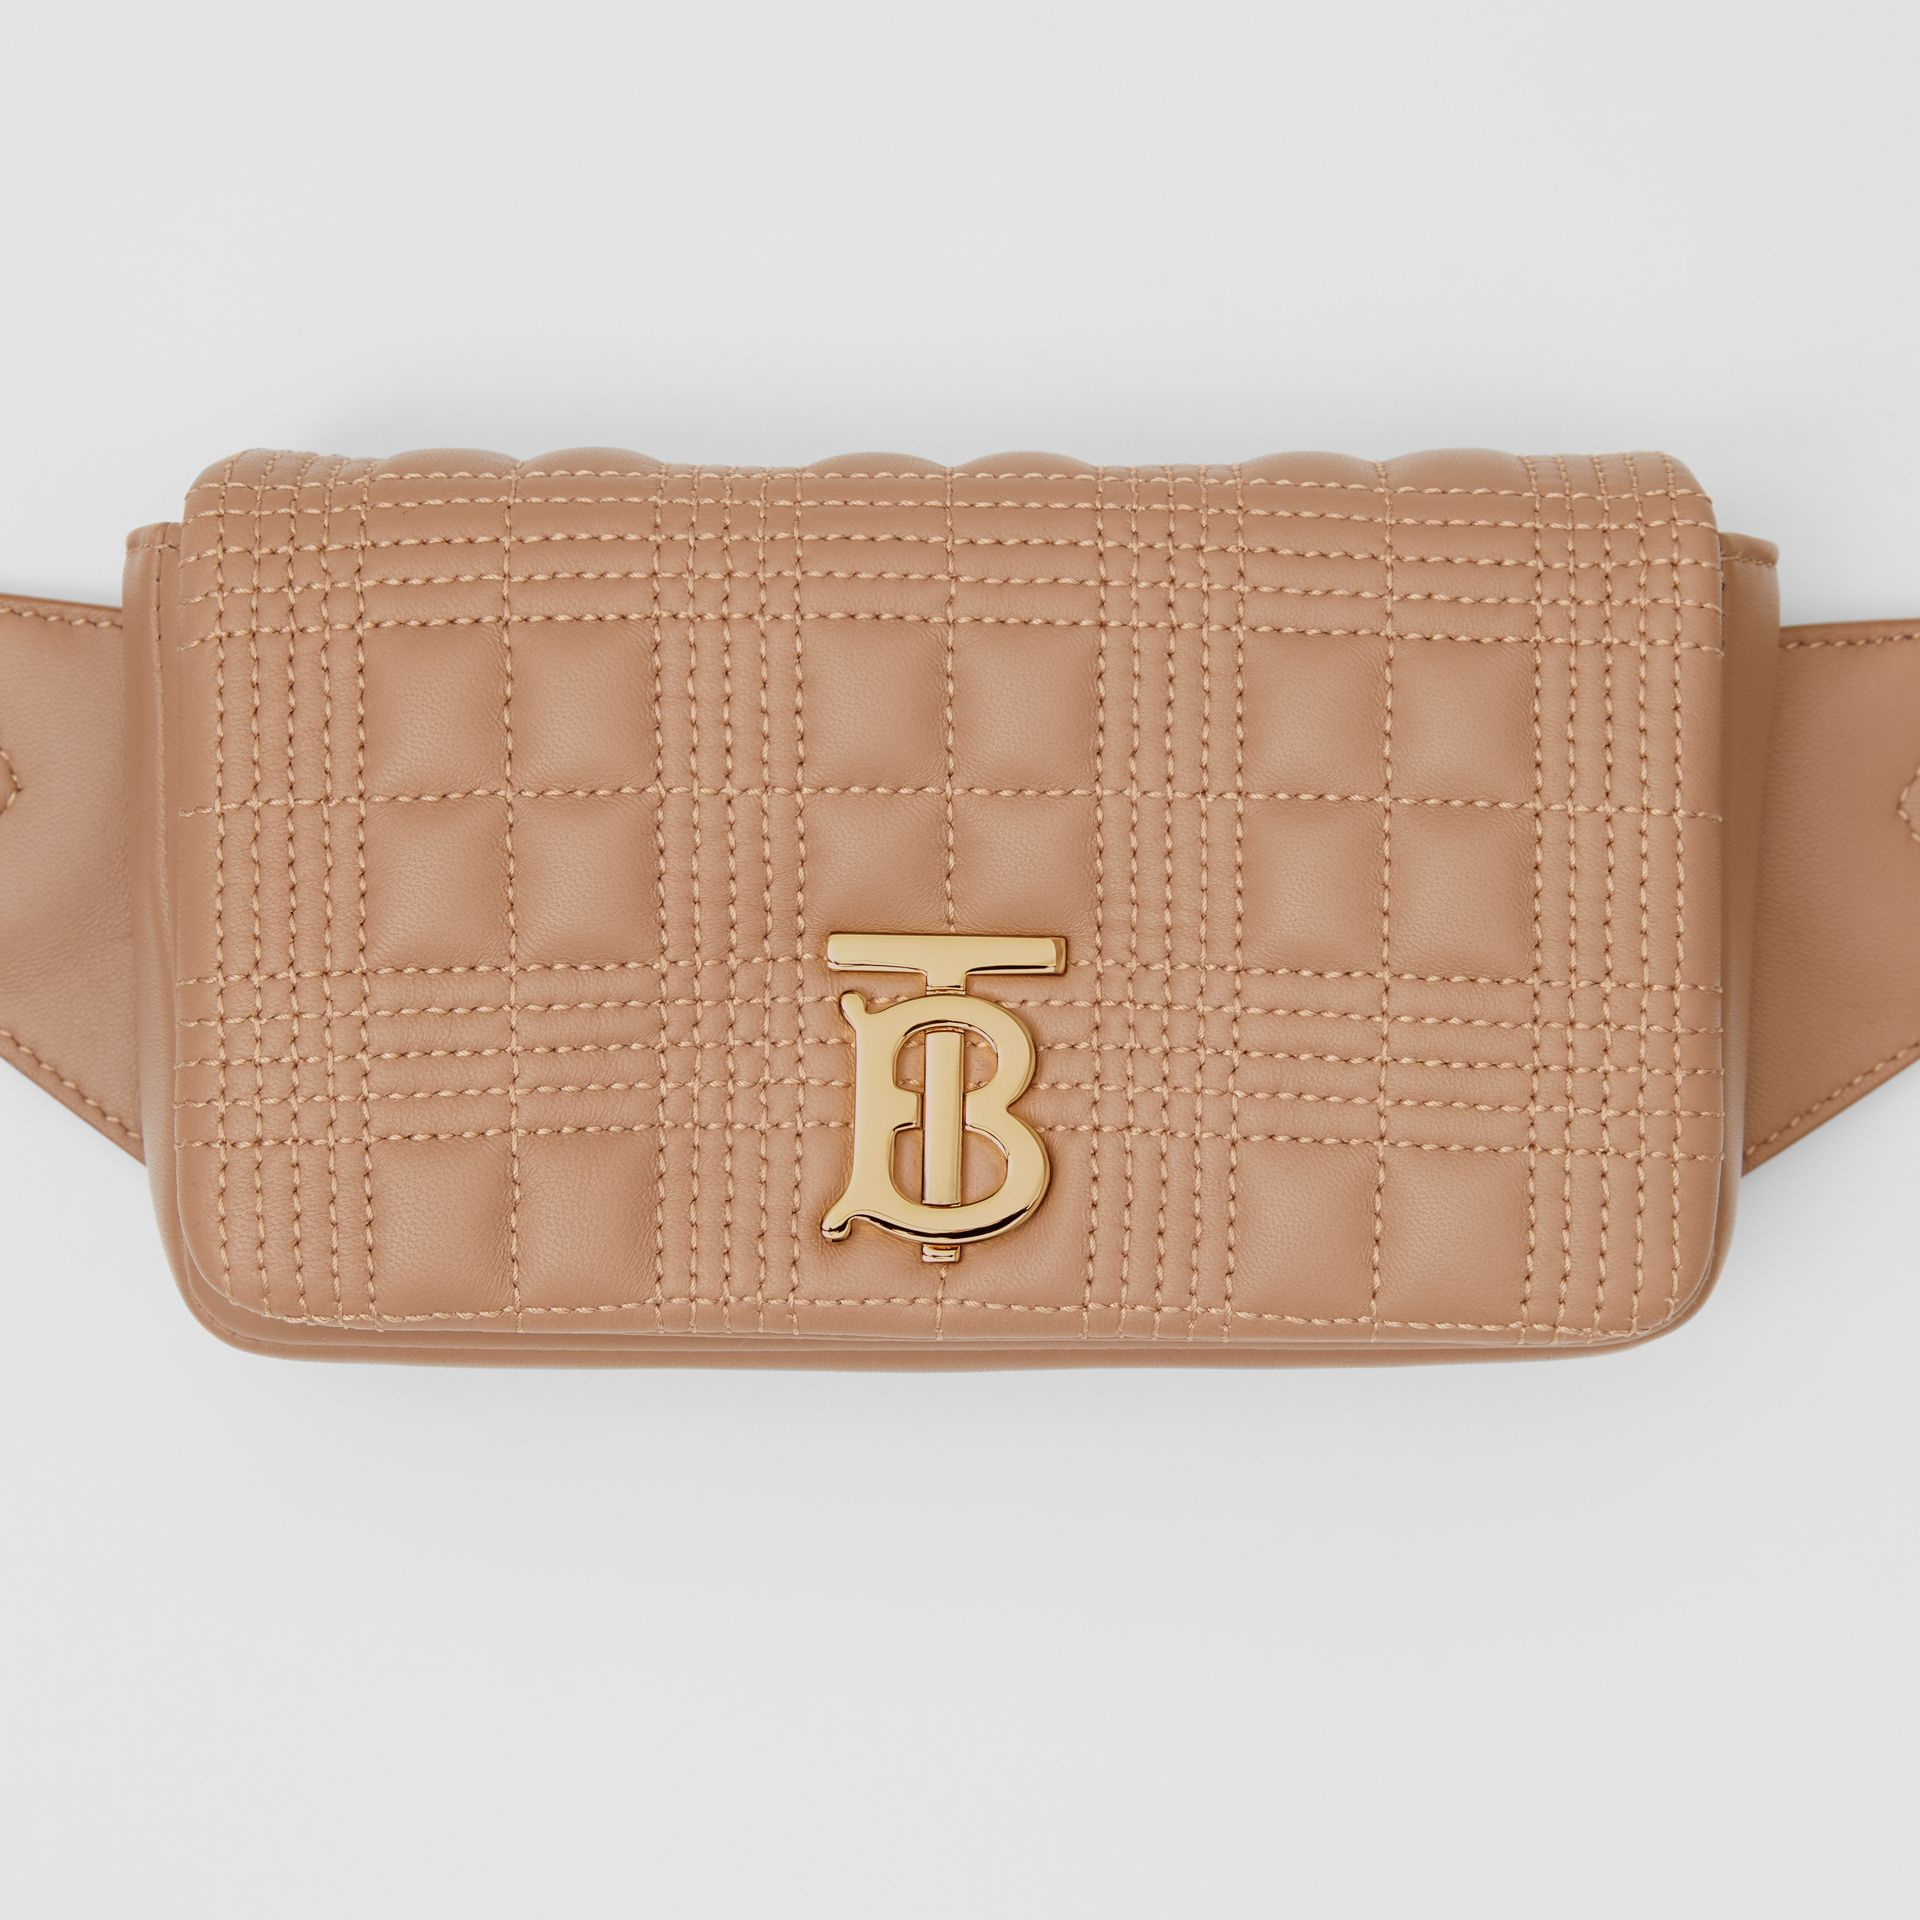 Quilted Lambskin Lola Bum Bag in Camel | Burberry - gallery image 1